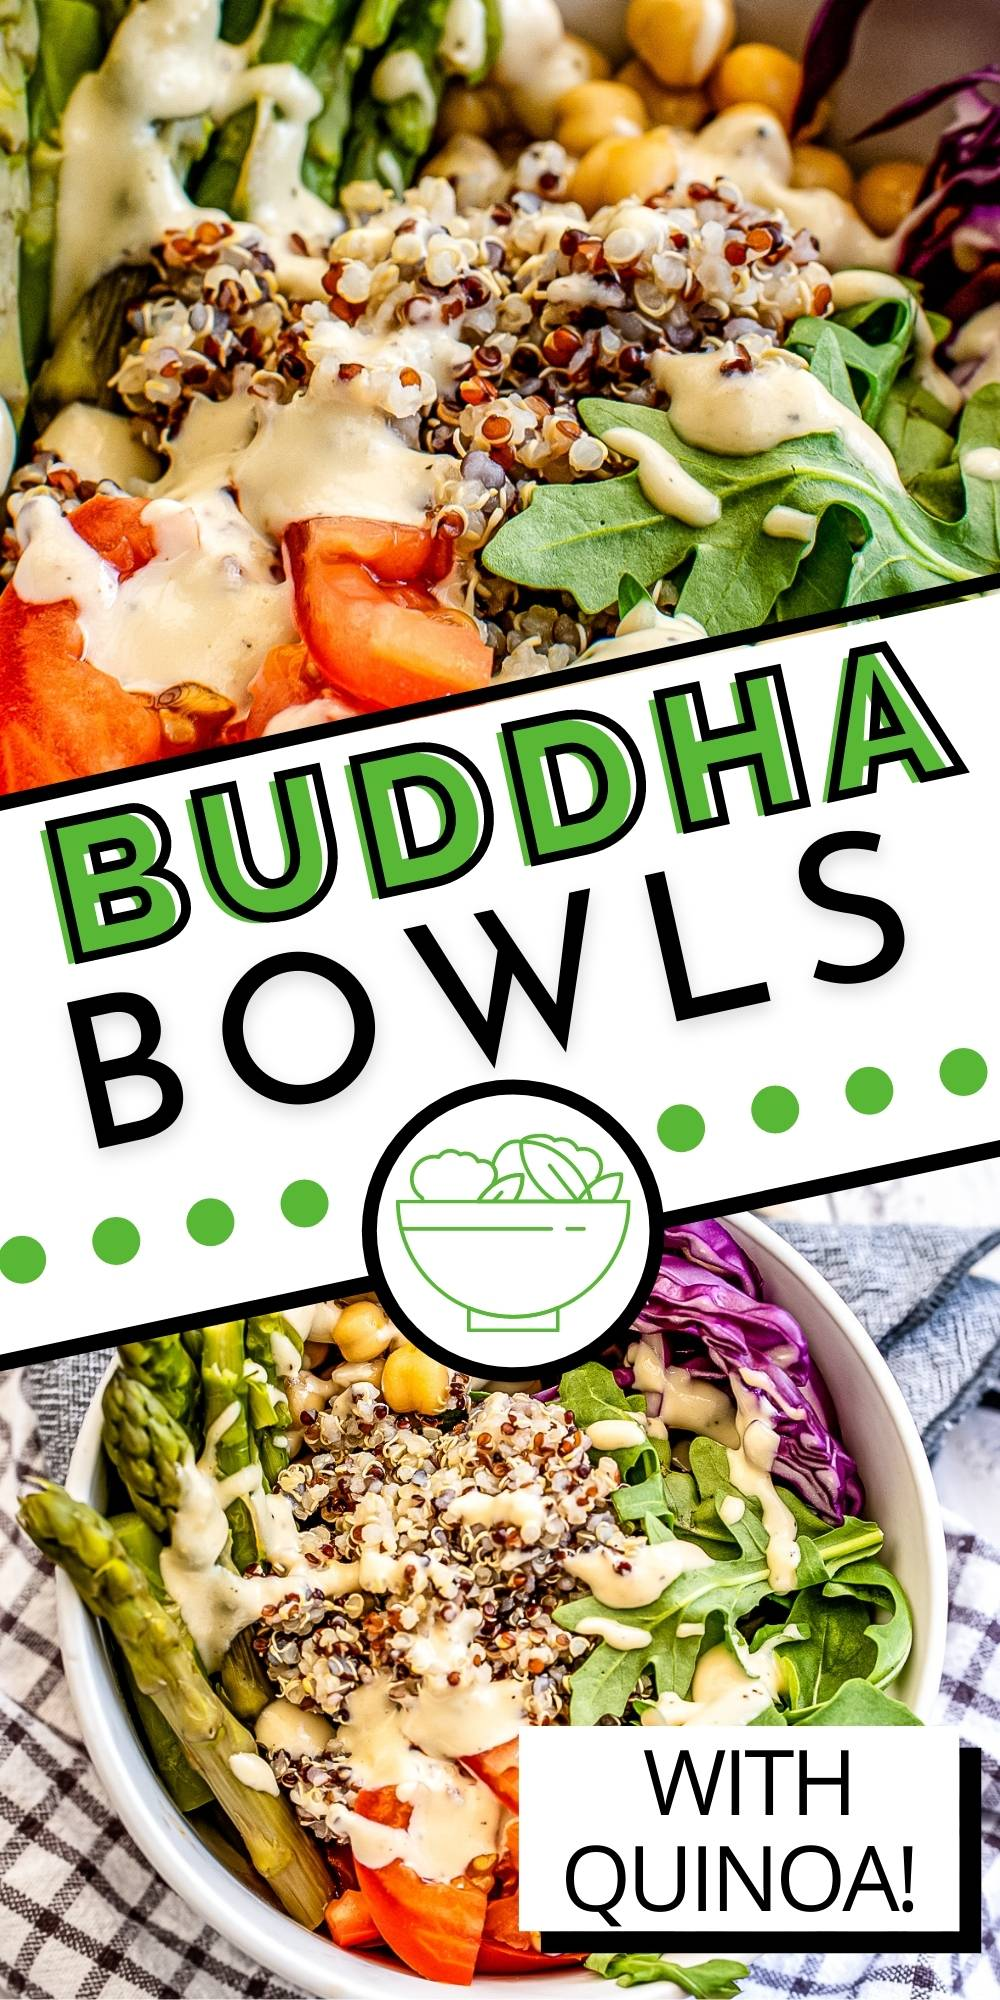 These Quinoa Buddha Bowls are a healthy and delicious lunch or light dinner. They're packed with veggies and good-for-you ingredients like quinoa and chickpeas.  via @easybudgetrecipes